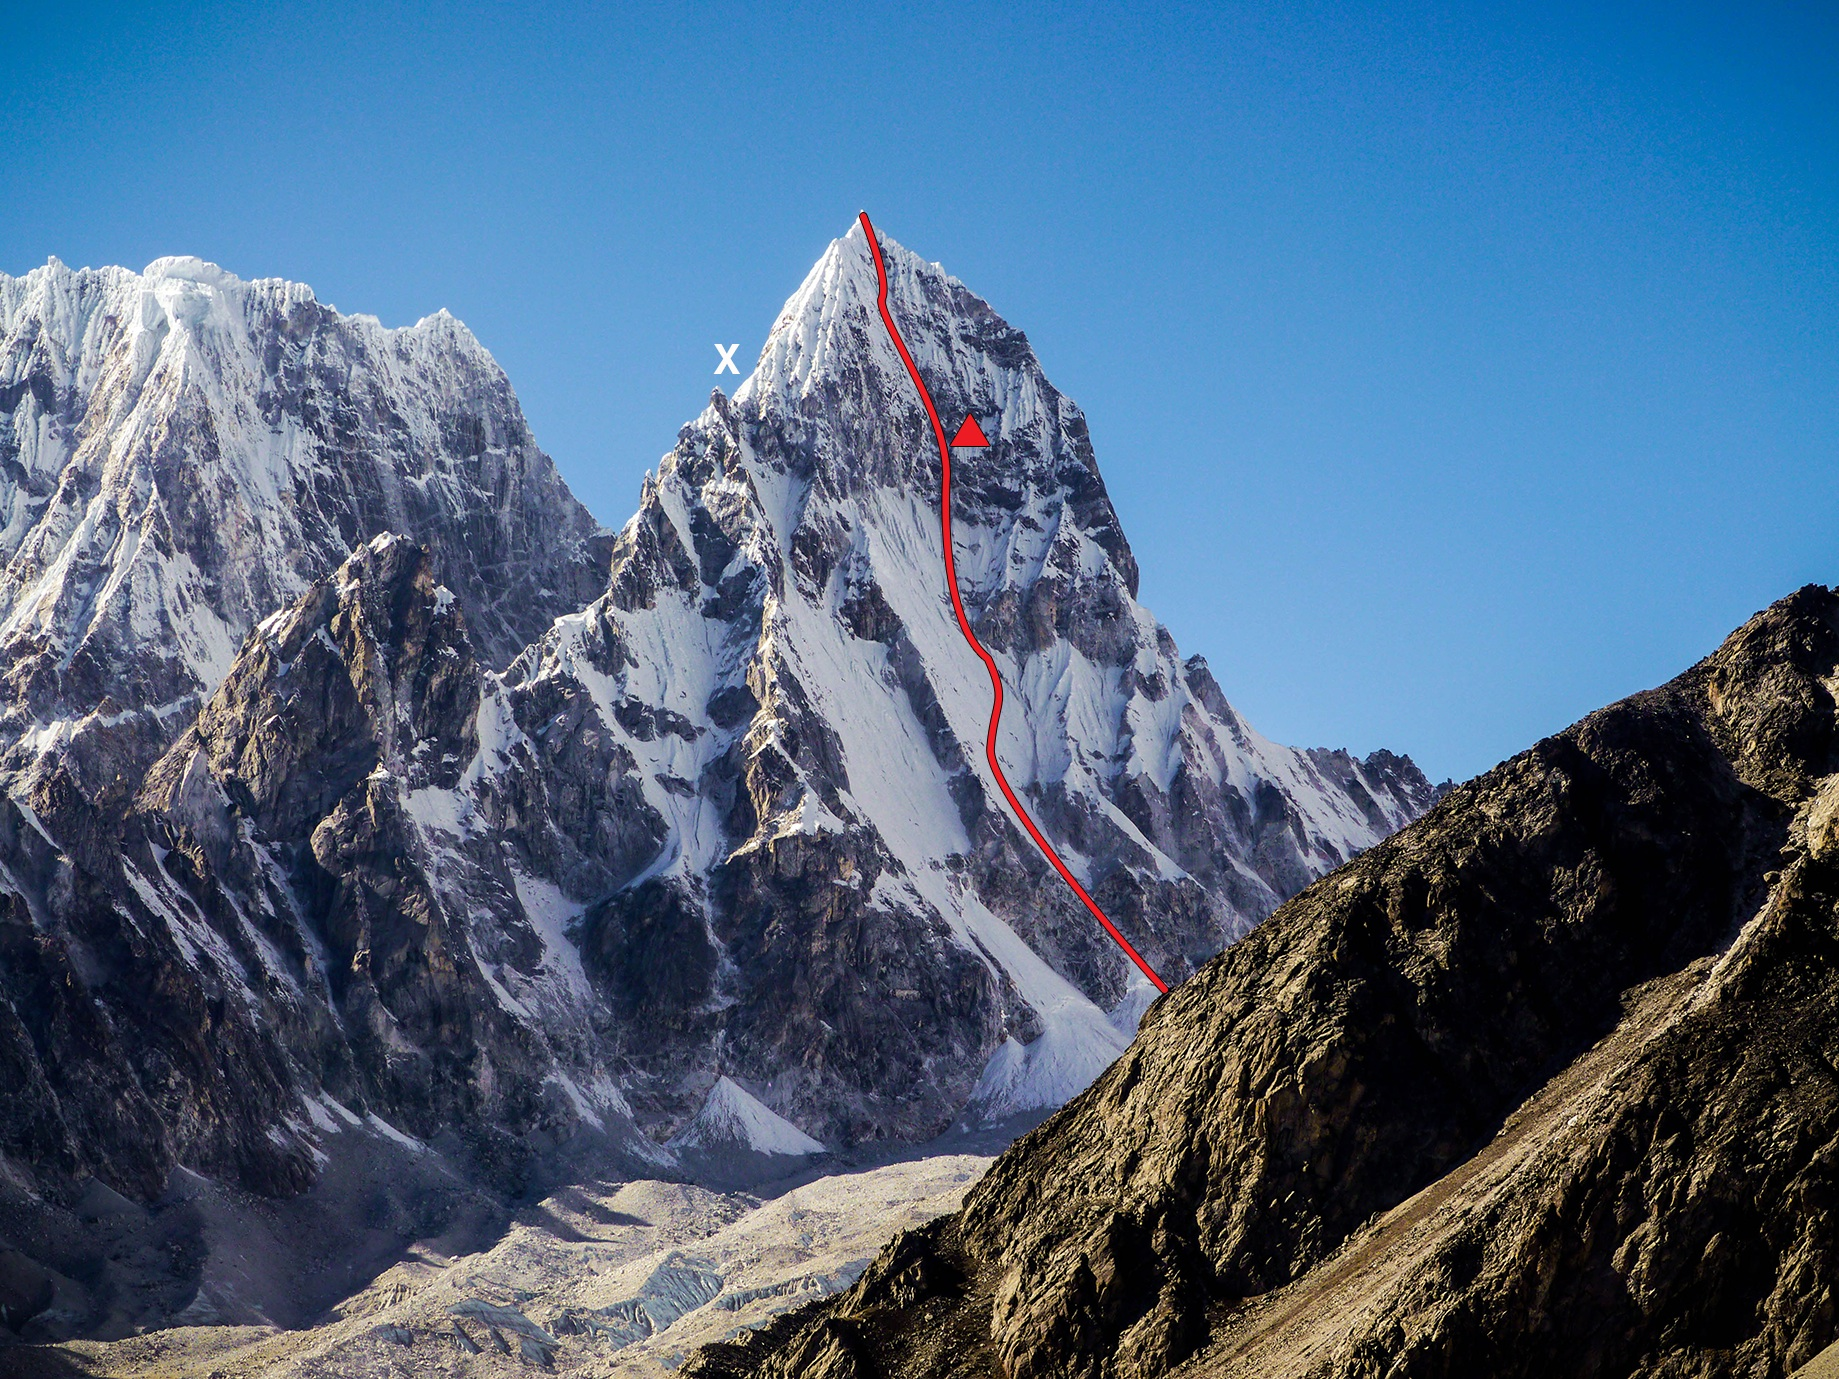 Pangbuk North (6,589m; 6,748m HMG-Finn map), with the line of the 2013 first ascent and bivouac site on the northeast face marked. The X marks the like- ly high point of the 2009 team, which attempted a line left of the 2013 route. In 2010, a French team attempted the leftmost ice sheet, continuing up the southeast ridge to the tower just left of the X. They described the ca 350 meters of terrain above this point on the southeast ridge as looking very difficult and tenuous, with huge snow mushrooms to pass. In the background: Pangbuk Ri (6,716m).